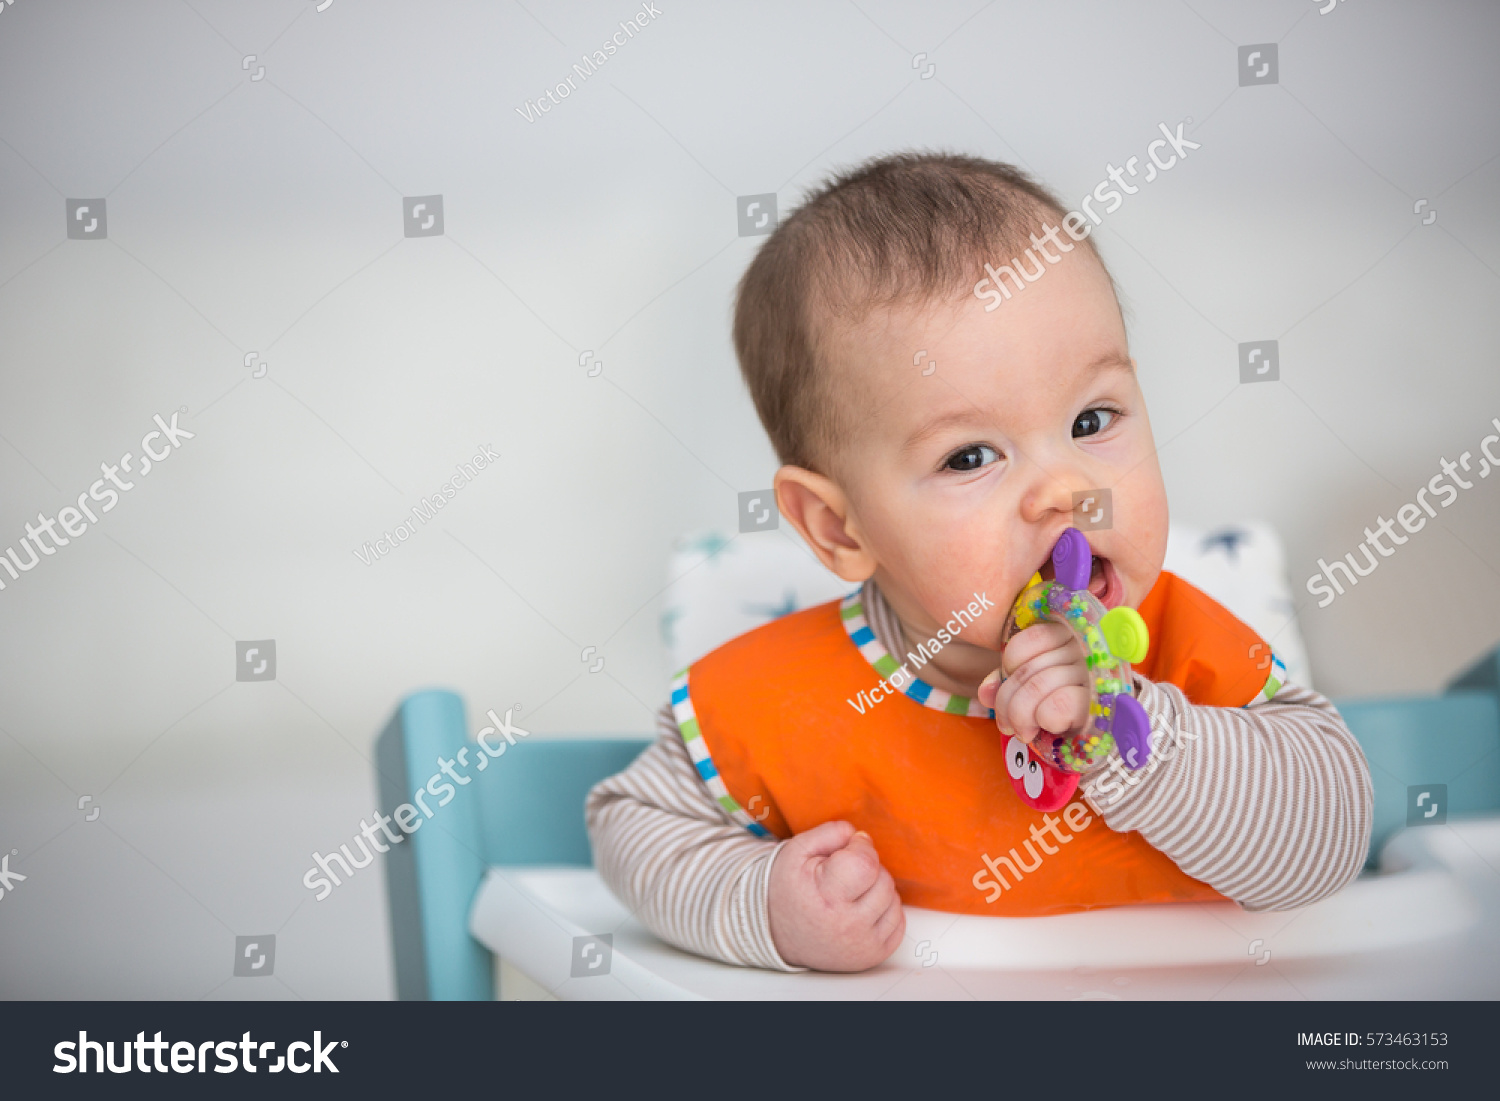 6 Month Old Baby Toys Baby Chewing Toy 6 Months Old Stock Photo 573463153